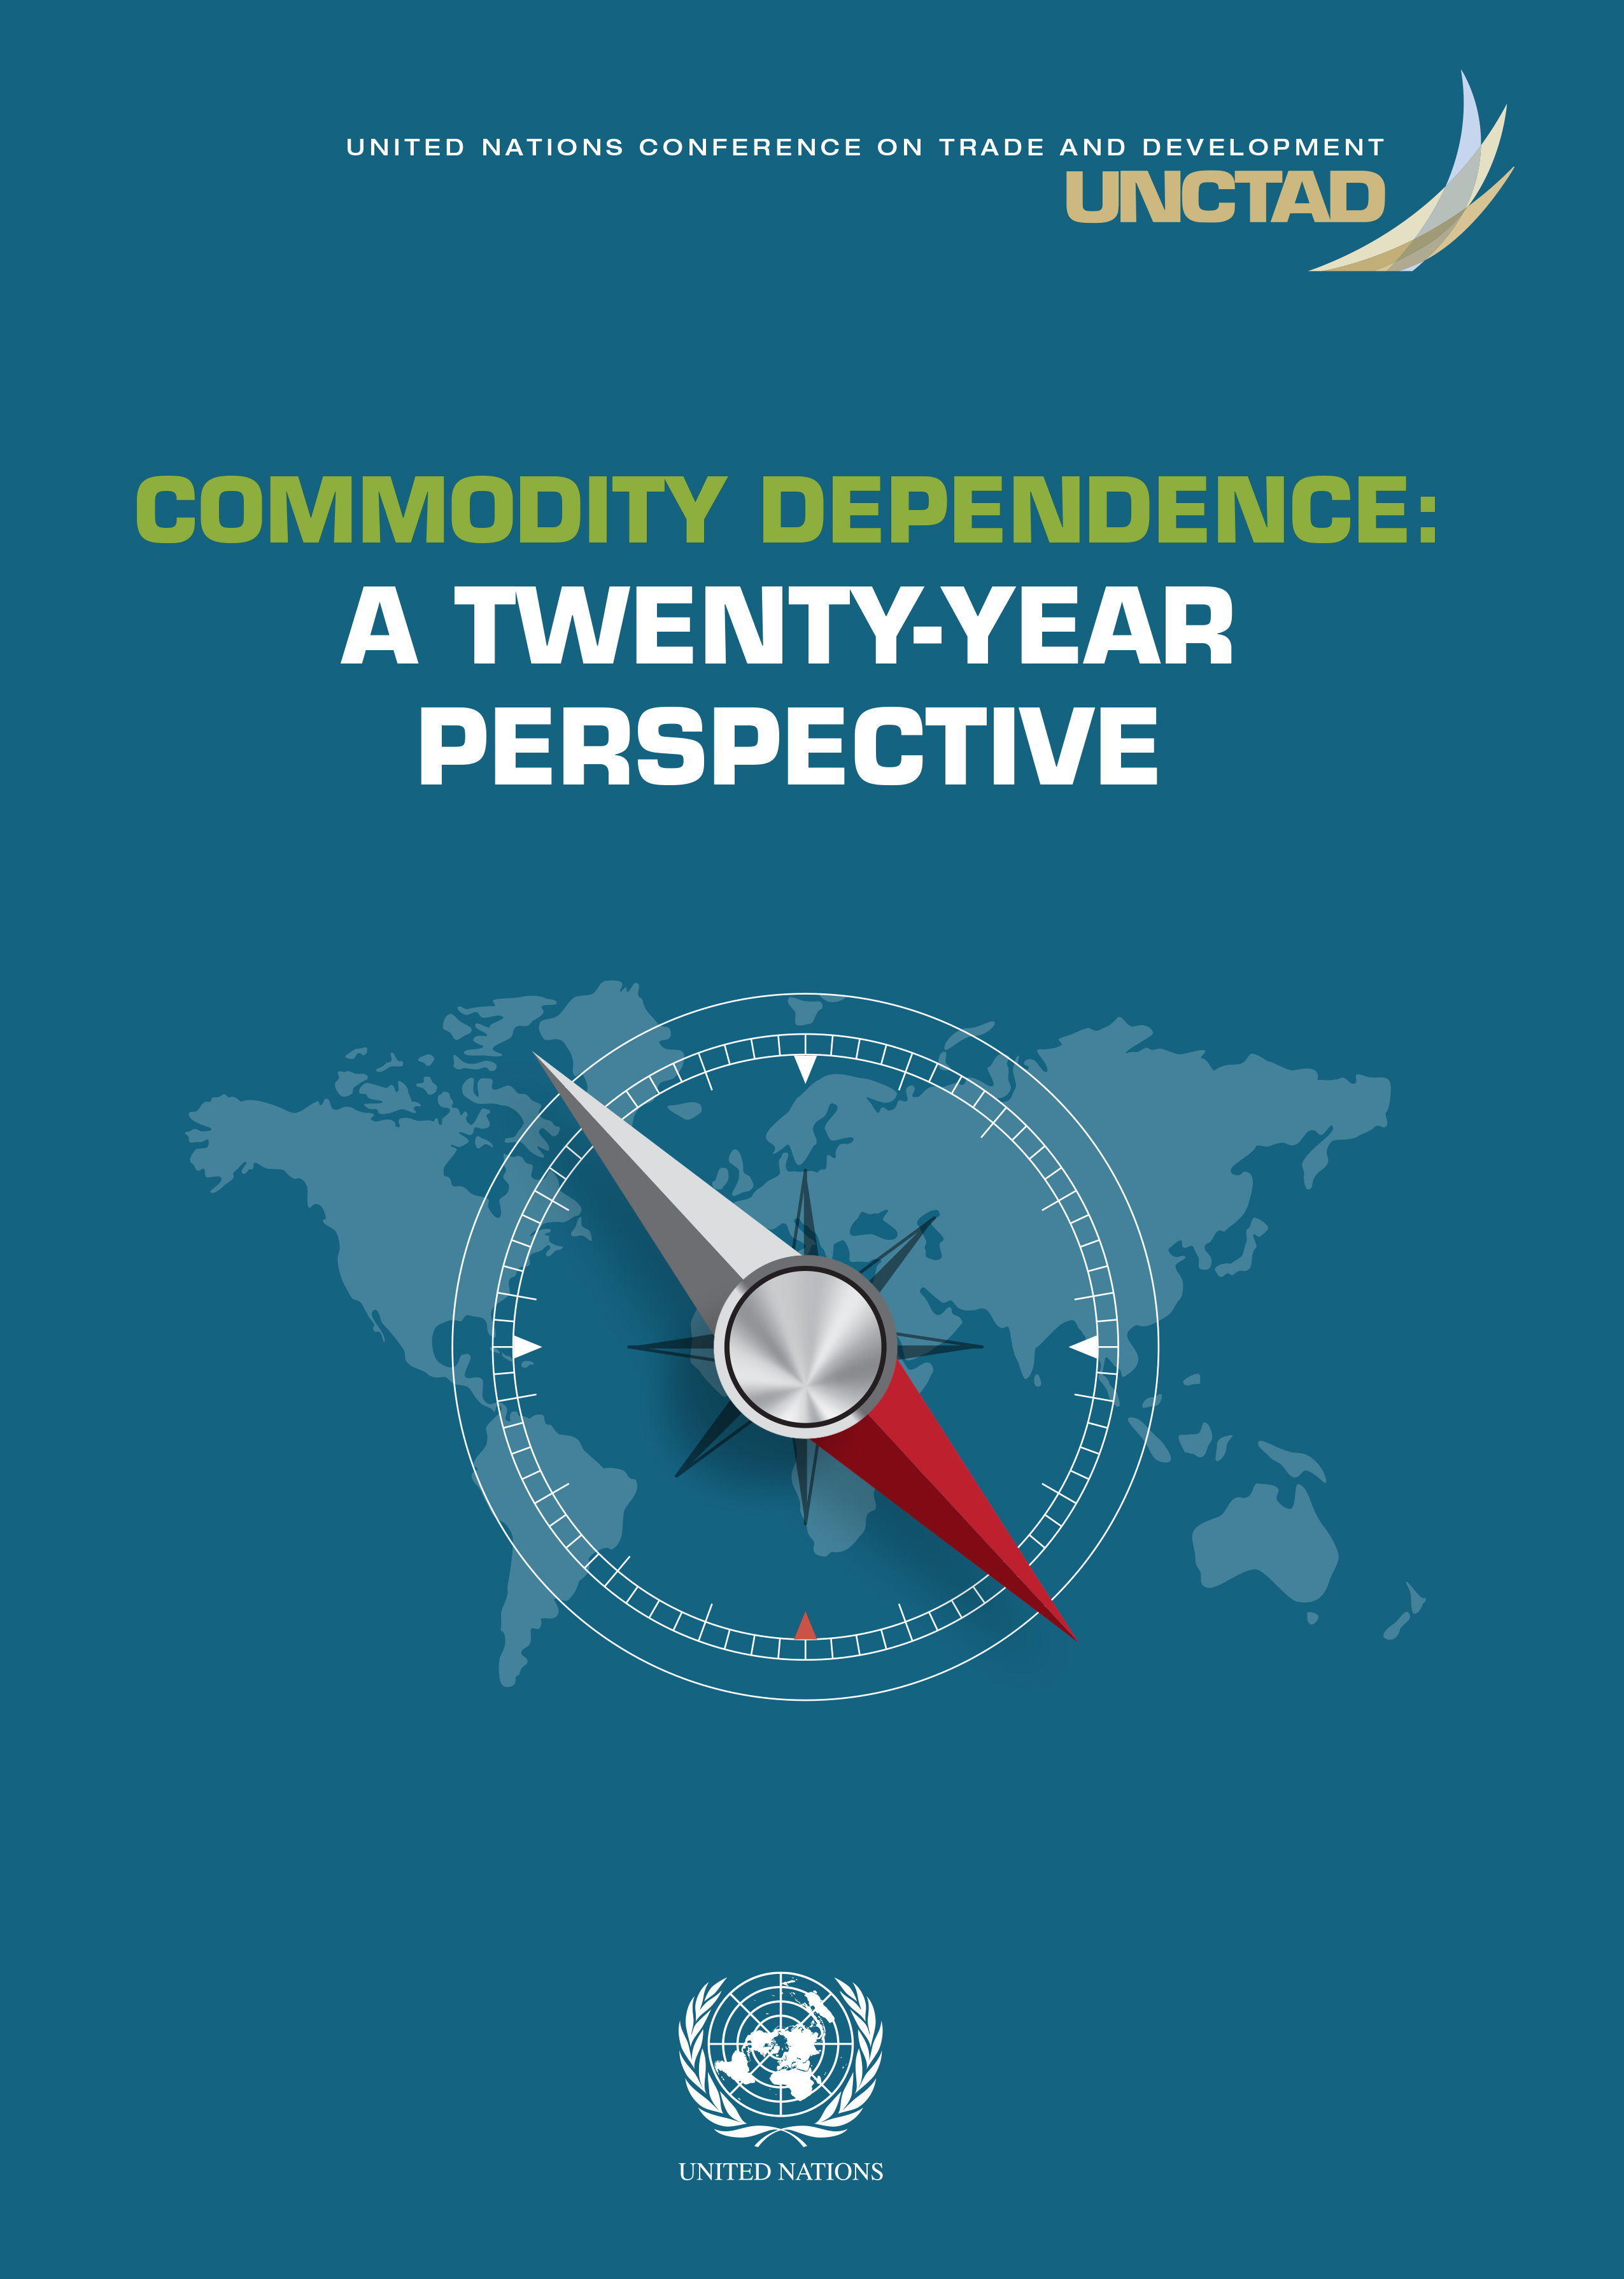 COMMODITY DEPENDENCE A TWENTY YR